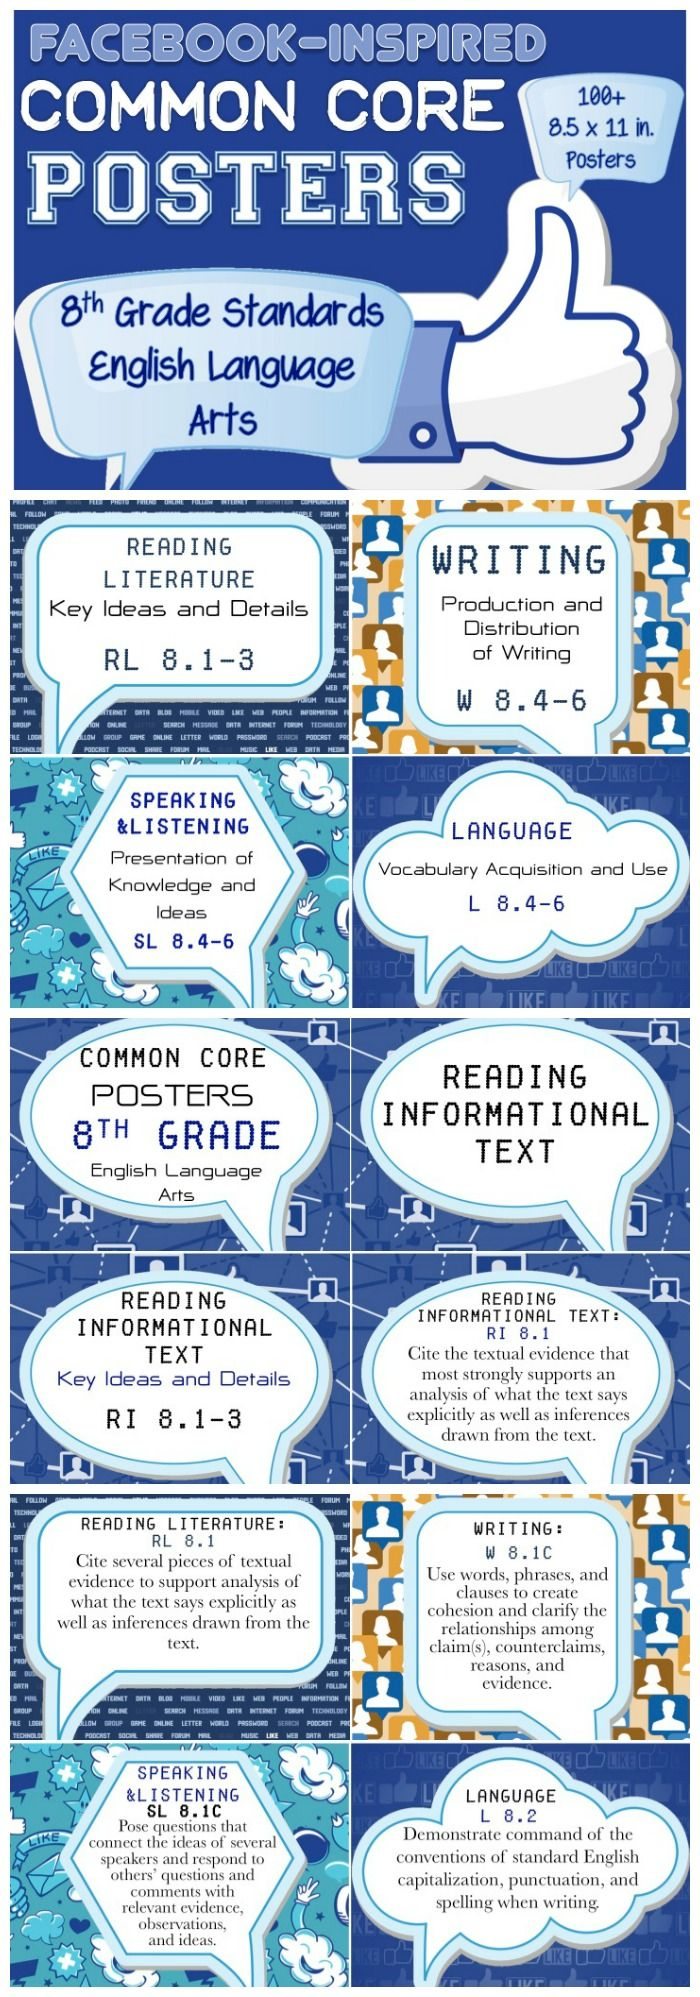 Over 100 Facebook inspired Common Core posters aligned with 8th grade ELA. These new CCSS standards are here to STAY! Purchase once. Print. Laminate. Use year after year! How can you go wrong?